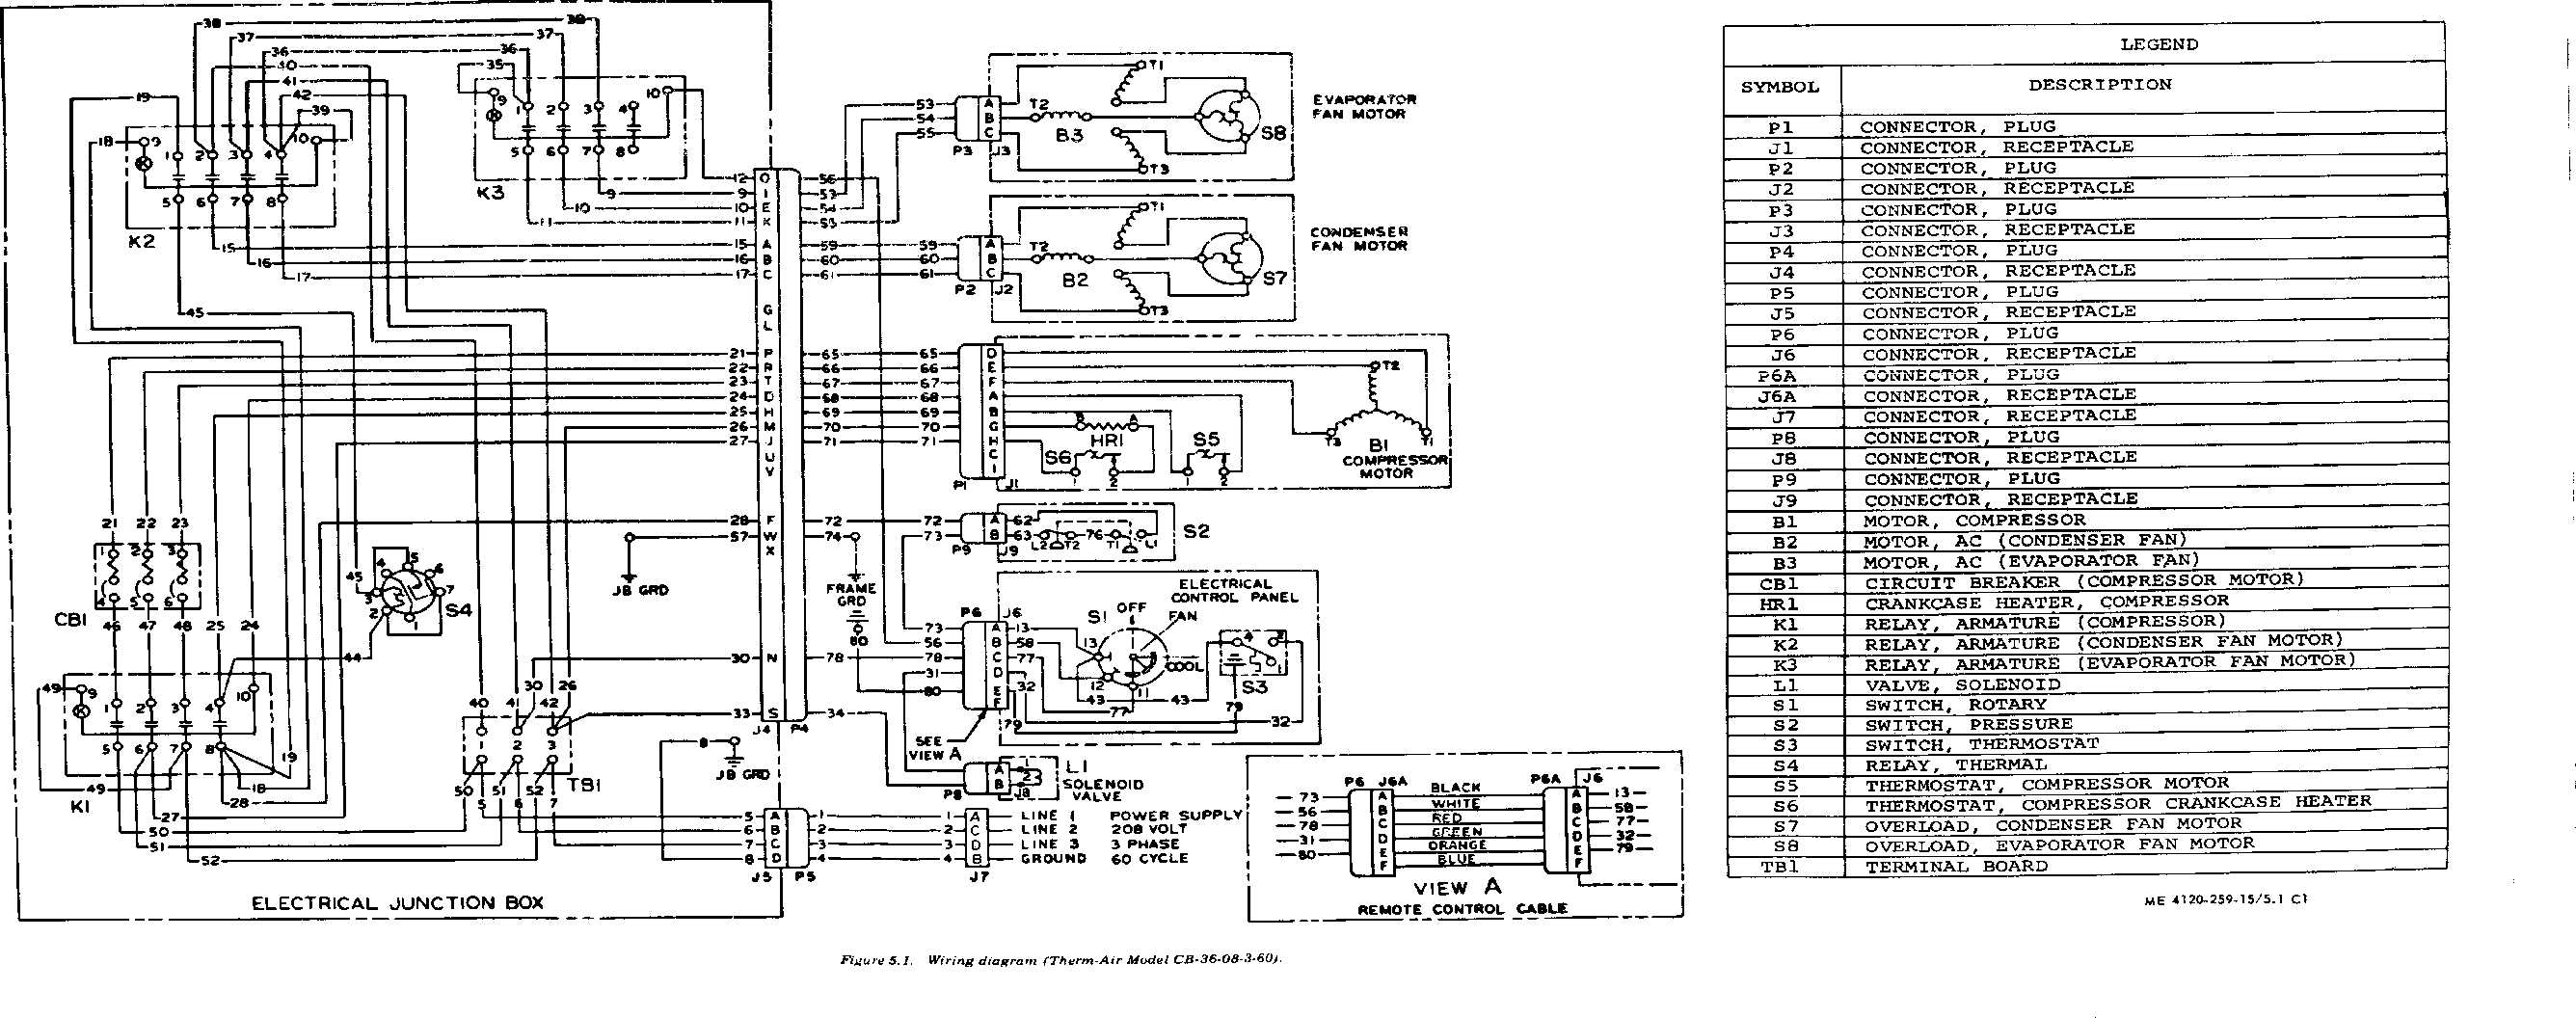 trane wiring diagrams trane wiring diagrams trane wiring diagrams tm 5 4120 259 15 87 1